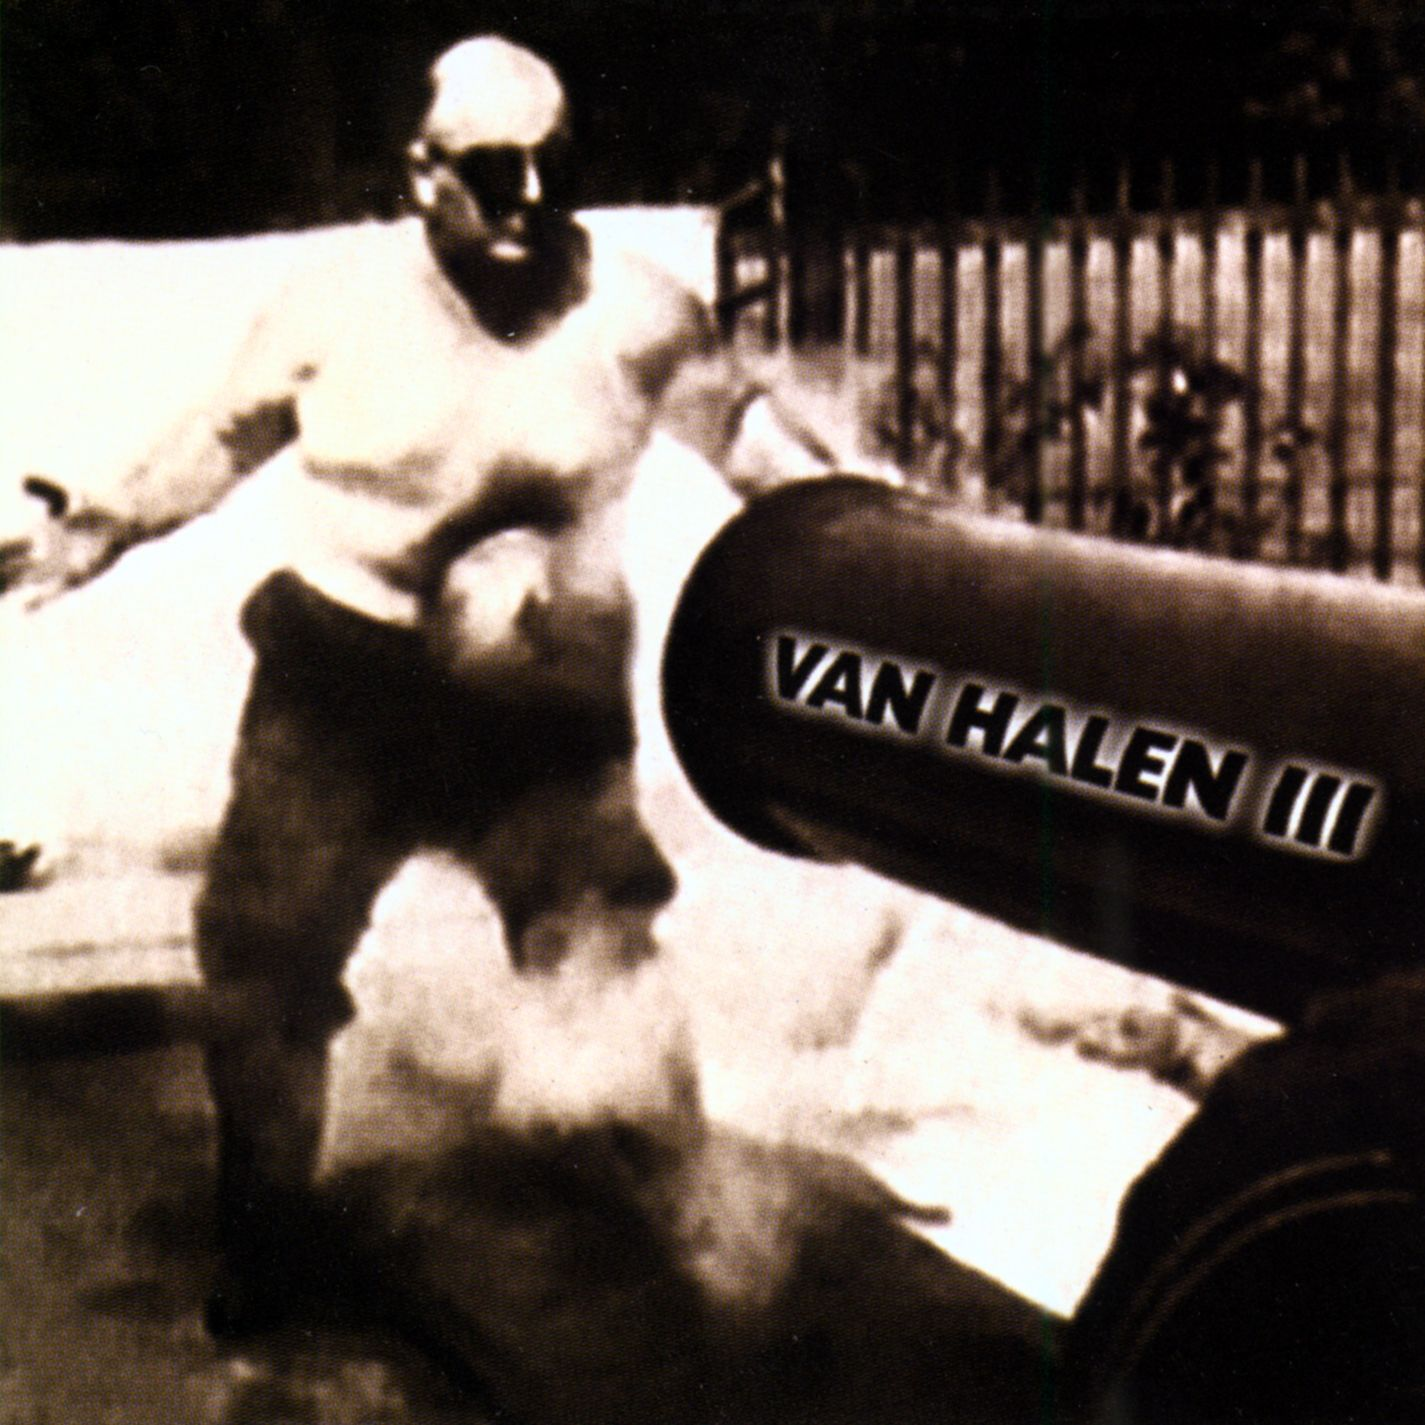 Reviews from albums van halen iii